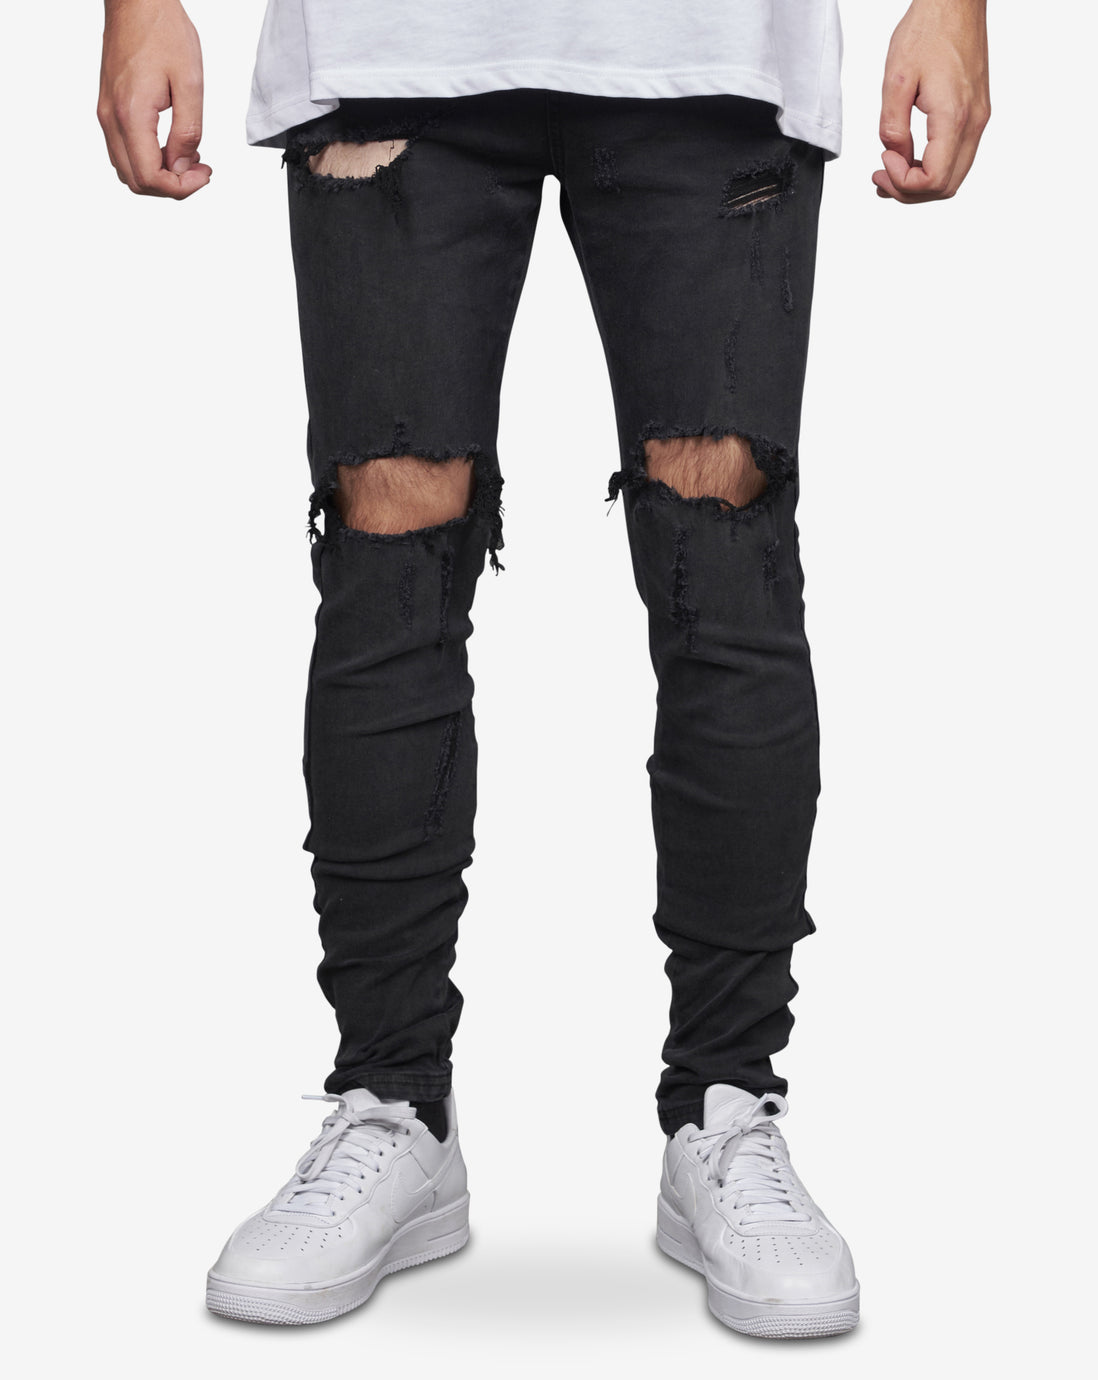 003 REGRETS JEAN - WASHED BLACK